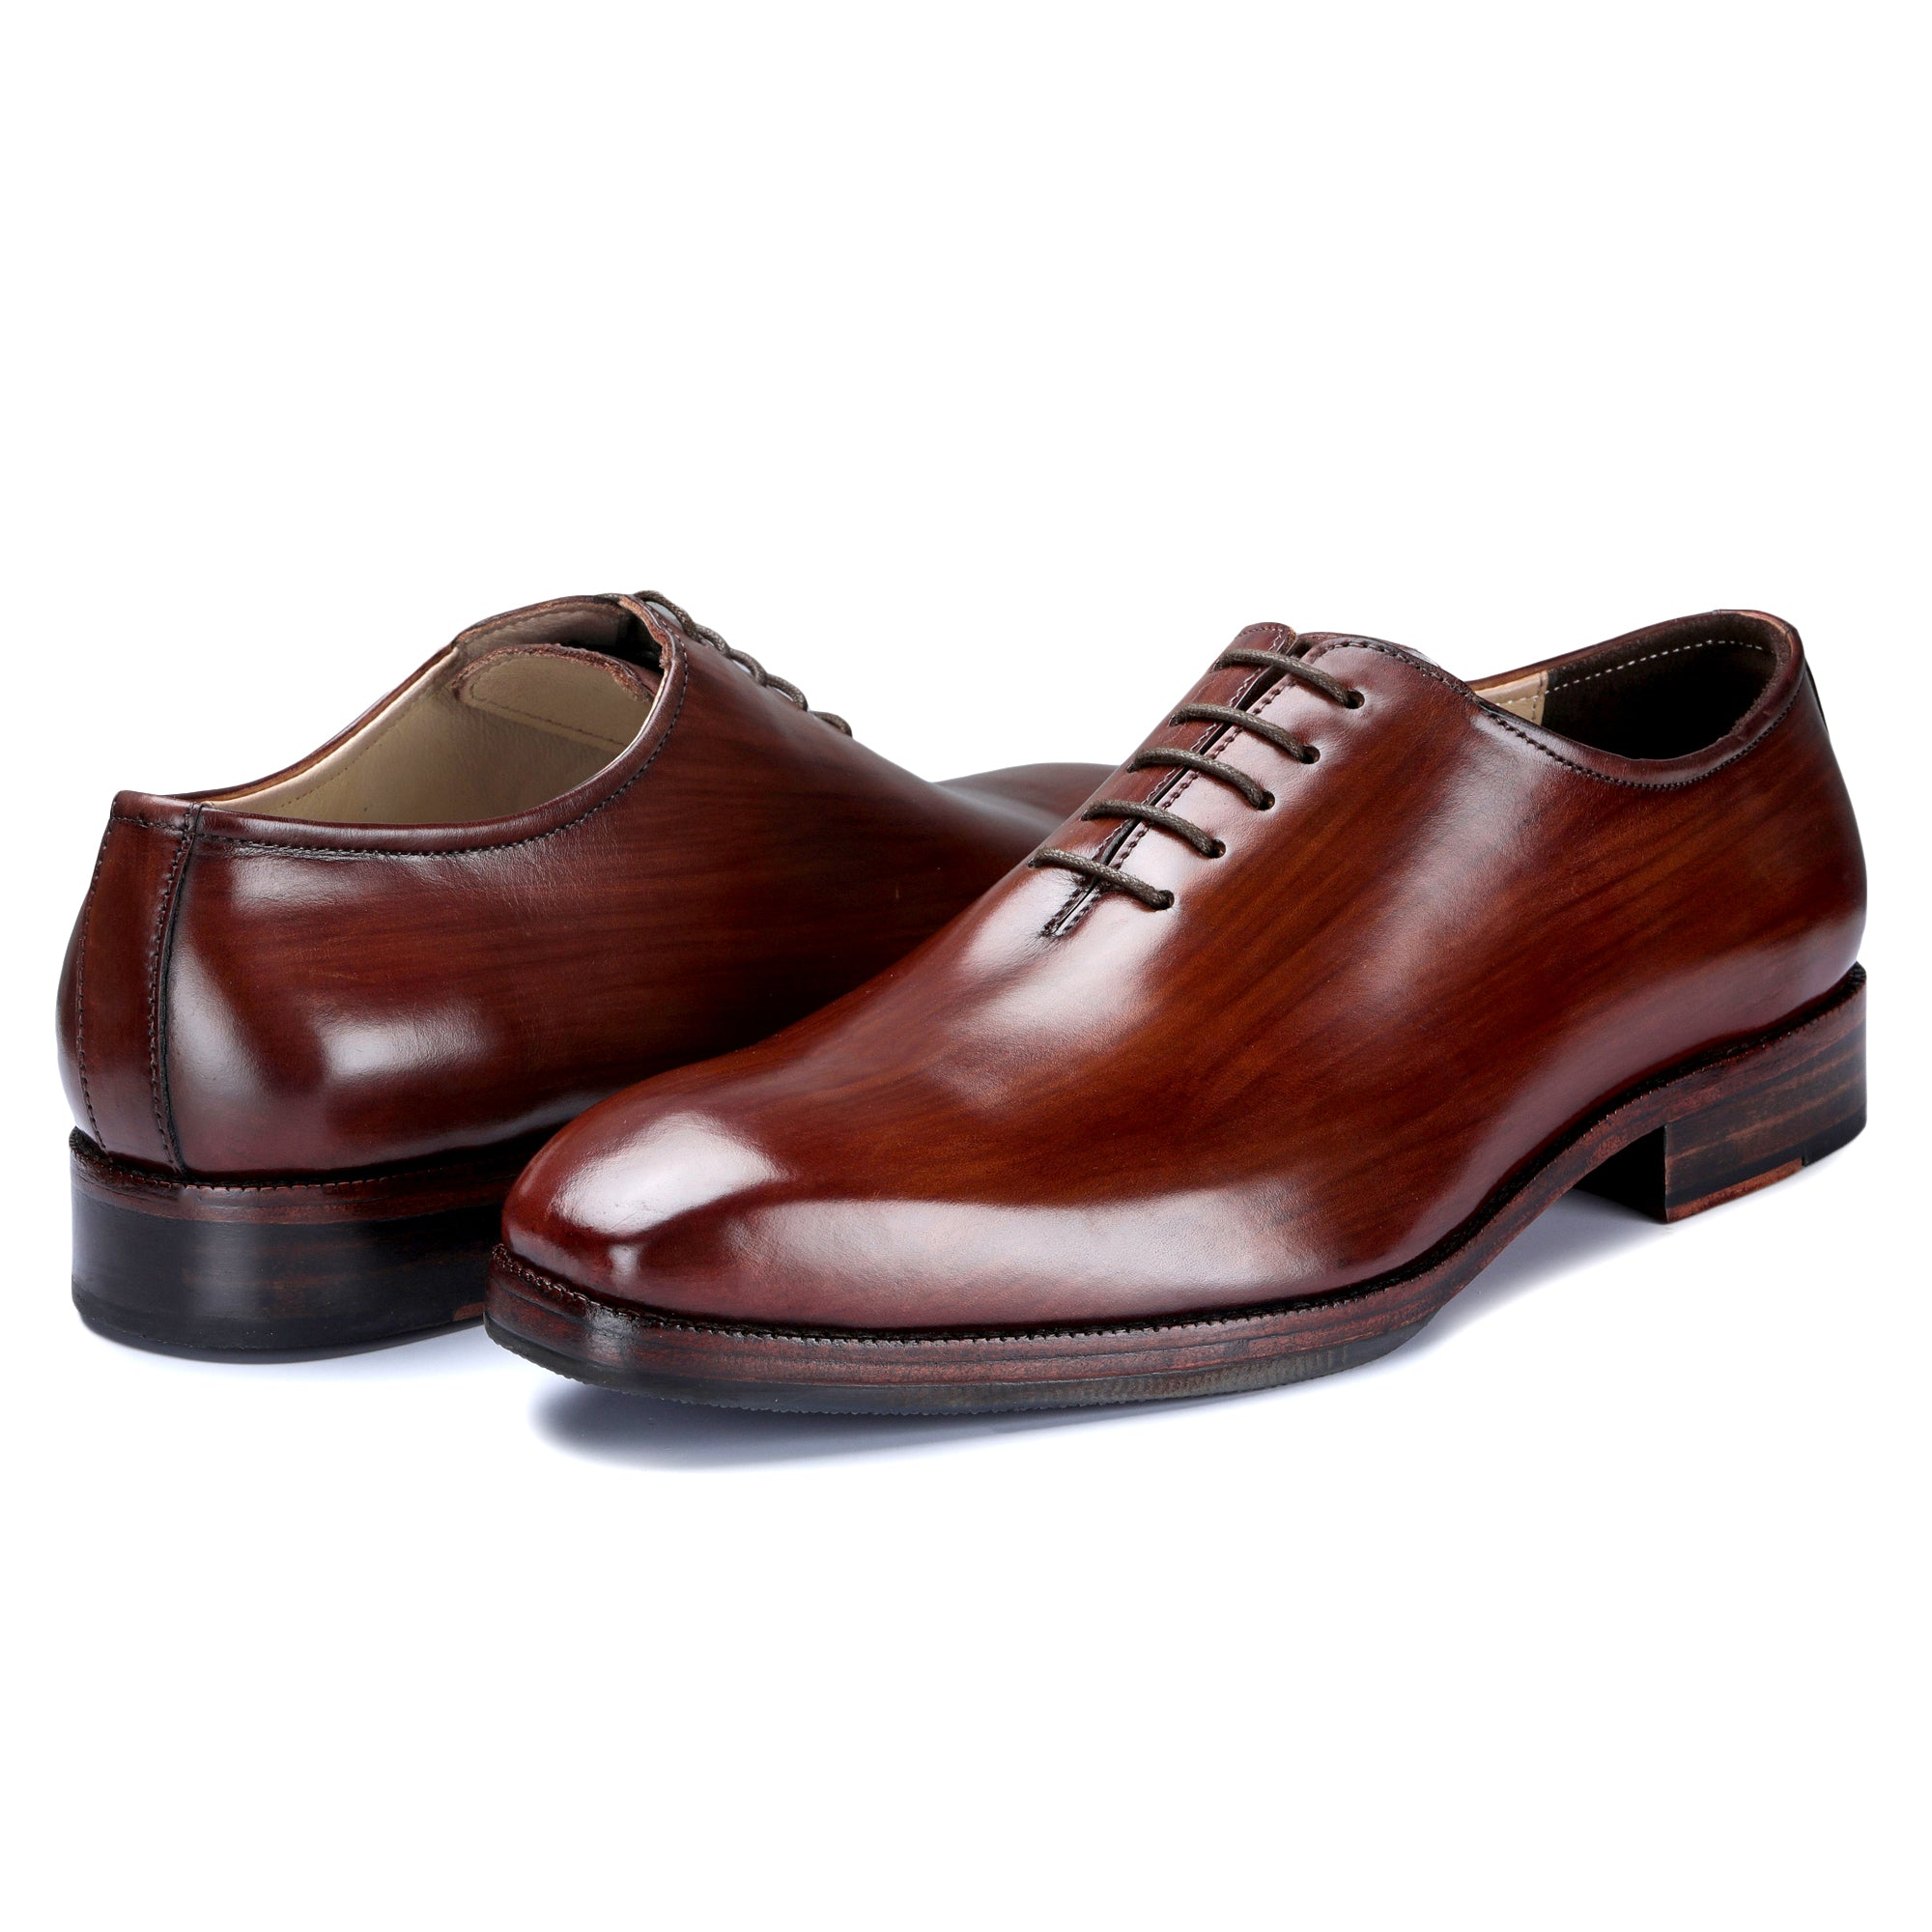 Custom made shoes hand painted wholecut oxford lace up shoes